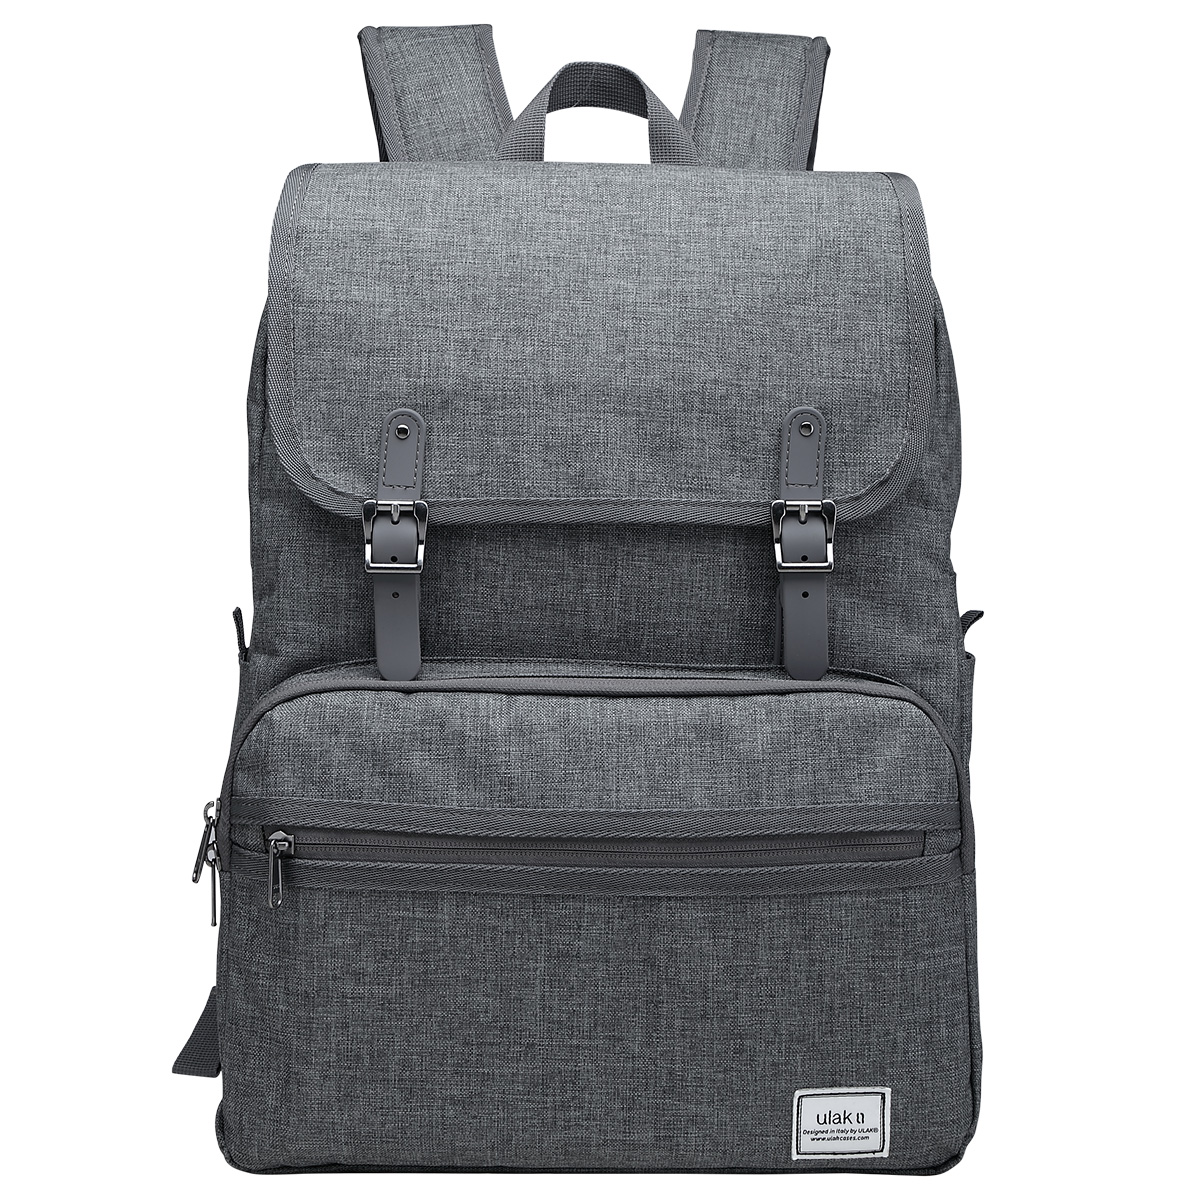 "Business Laptop Backpack, ULAK Slim Anti Theft Computer Bag, Water-resistant College School Everyday Backpack Eco-friendly Travel Shoulder Bag Fits Under 15.6"" Laptop & Note Book- Grey"